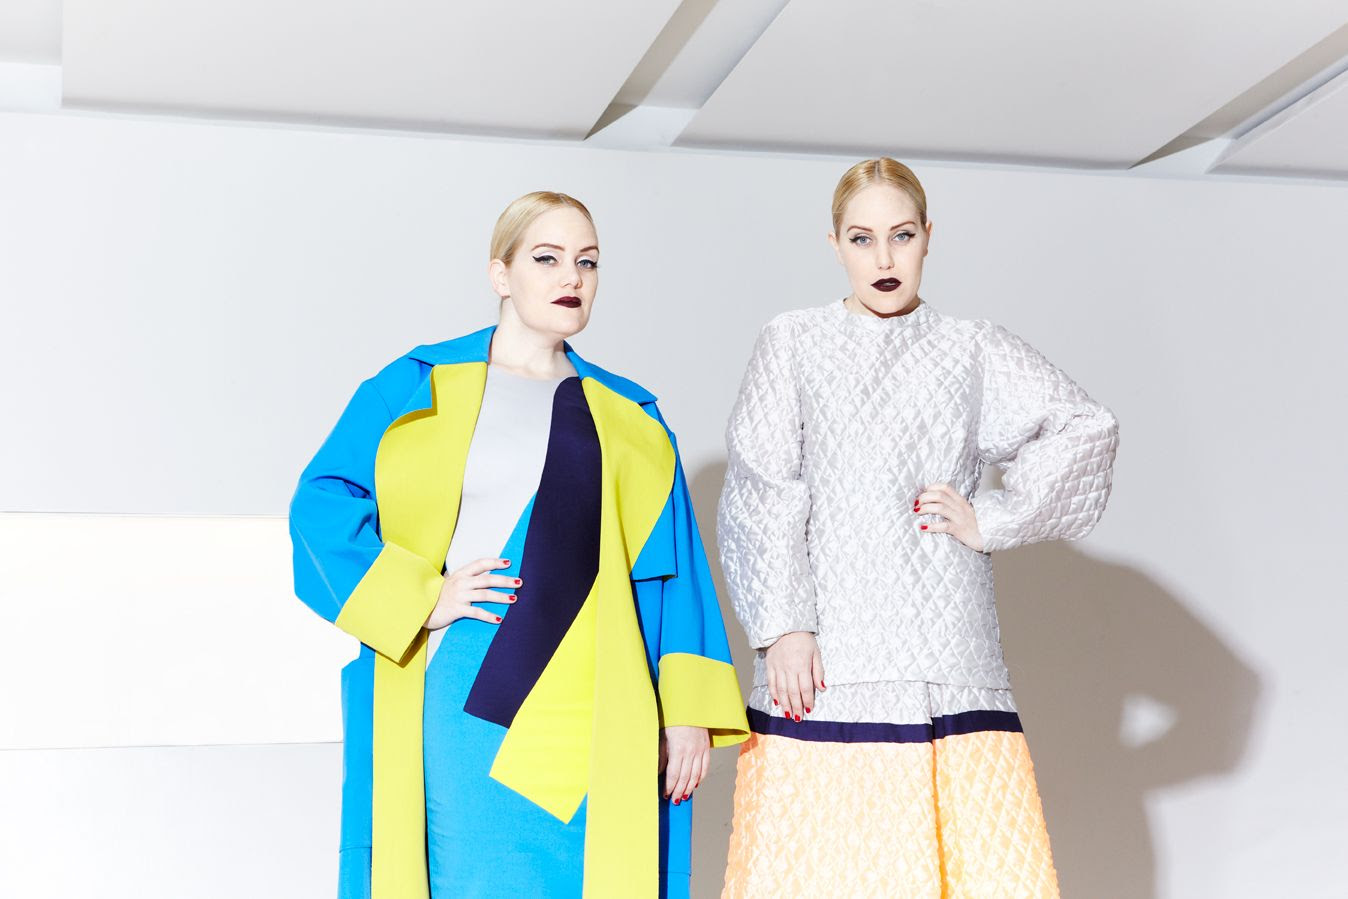 photo Beckermanblog-Toronto-RoksandaIlincic-JanuaryFlareMagazine2015-CailliandSamBeckerman-1_zps62e5bd61.jpg